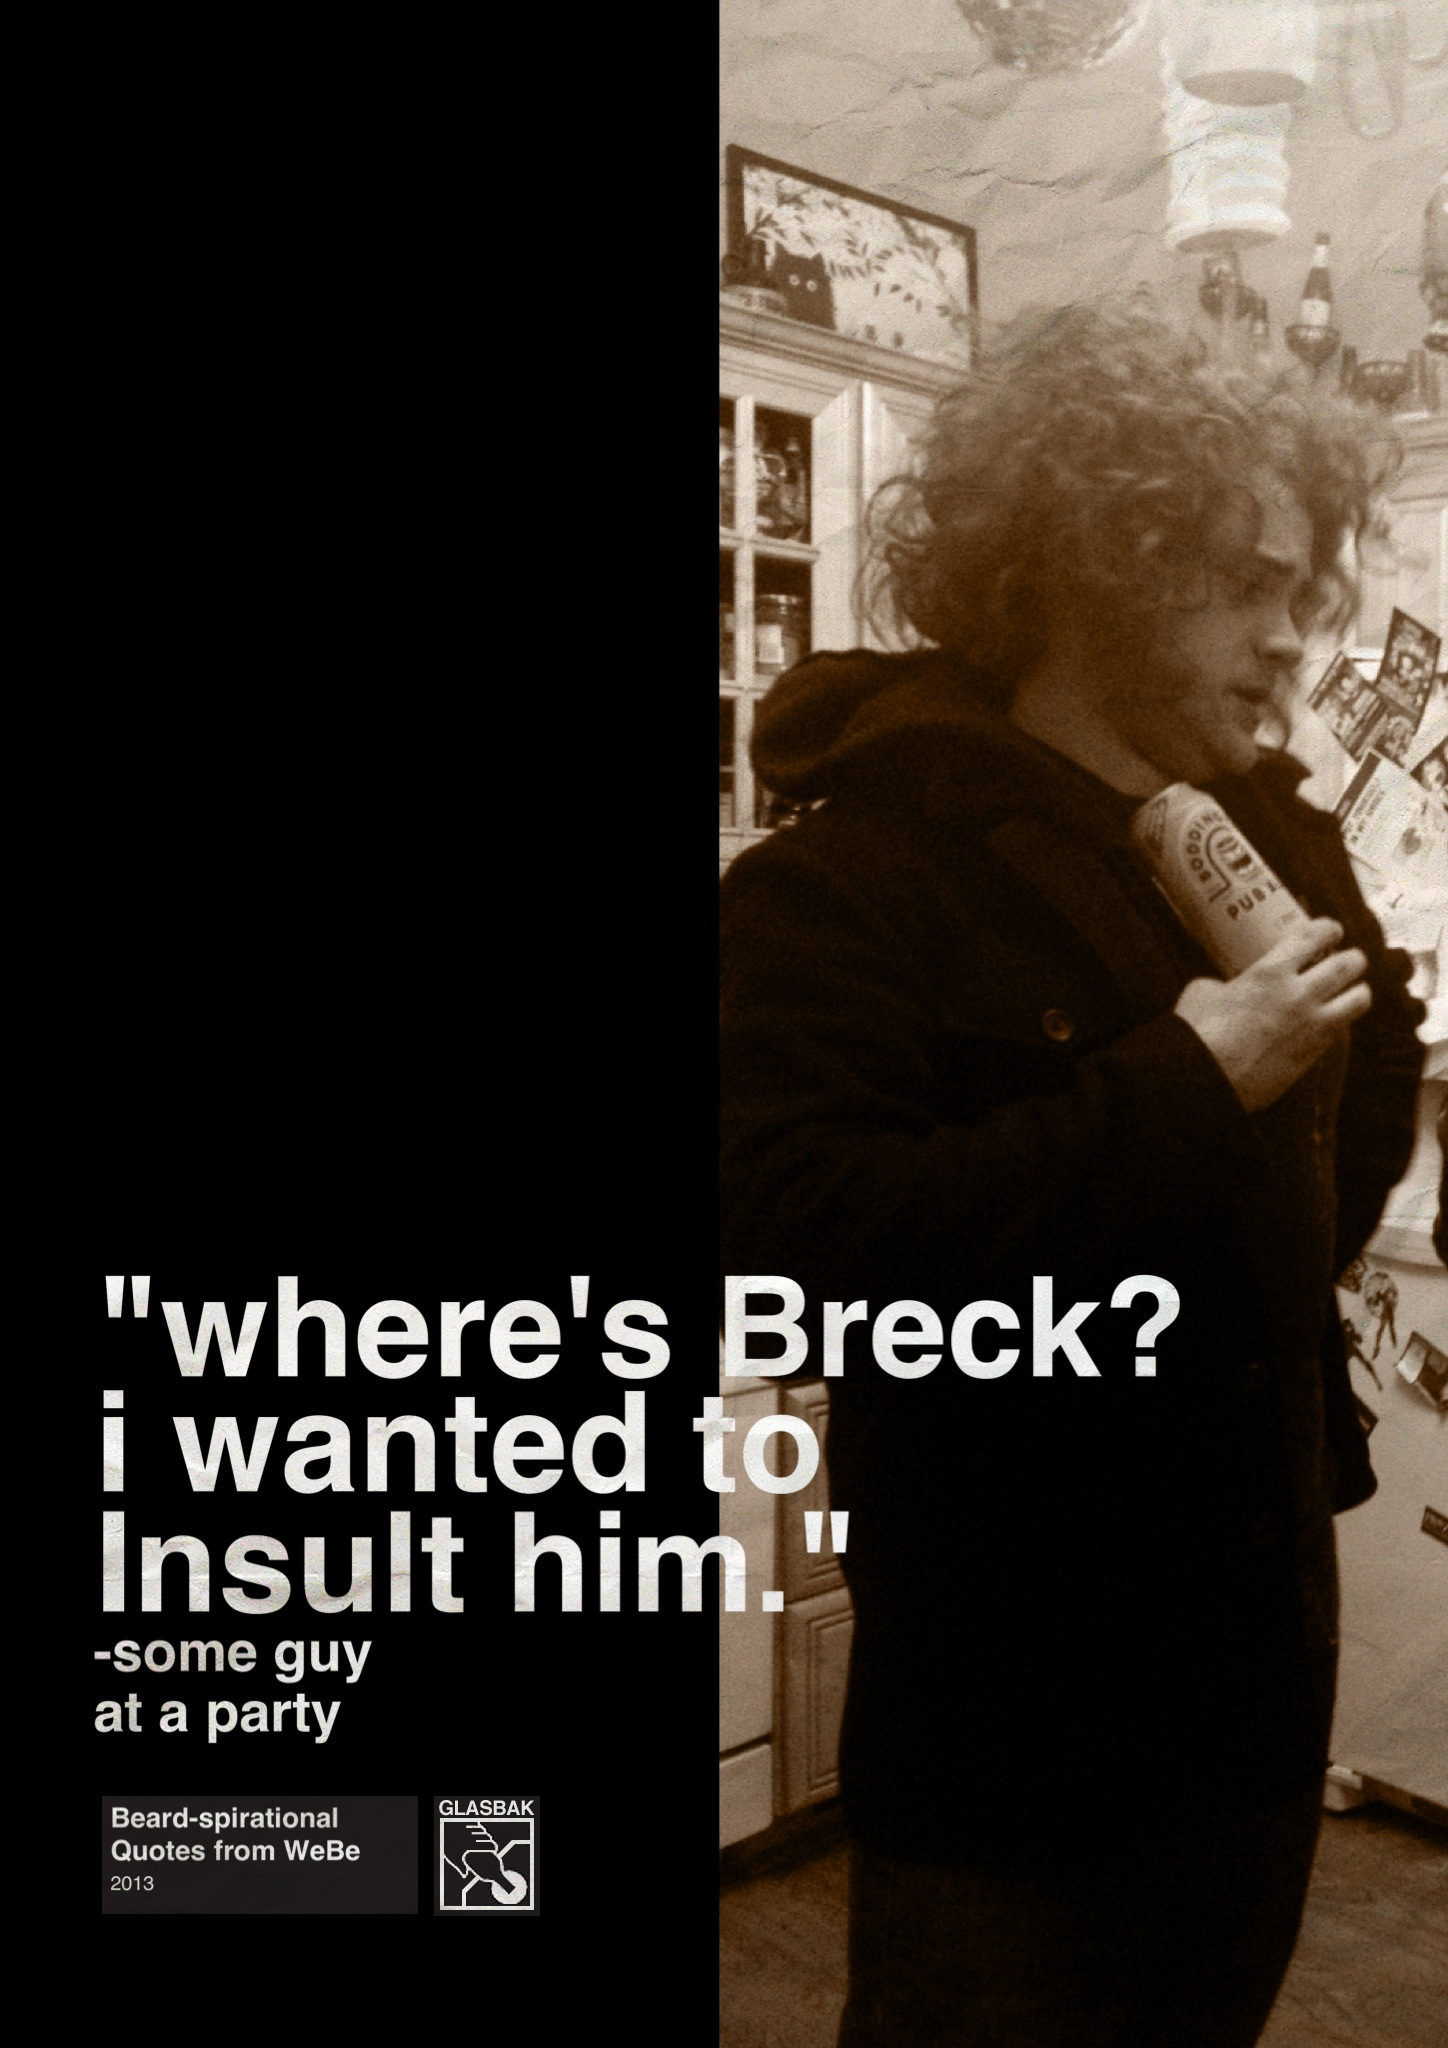 2013-01-16_where's Breck I wanted to insult him.jpg